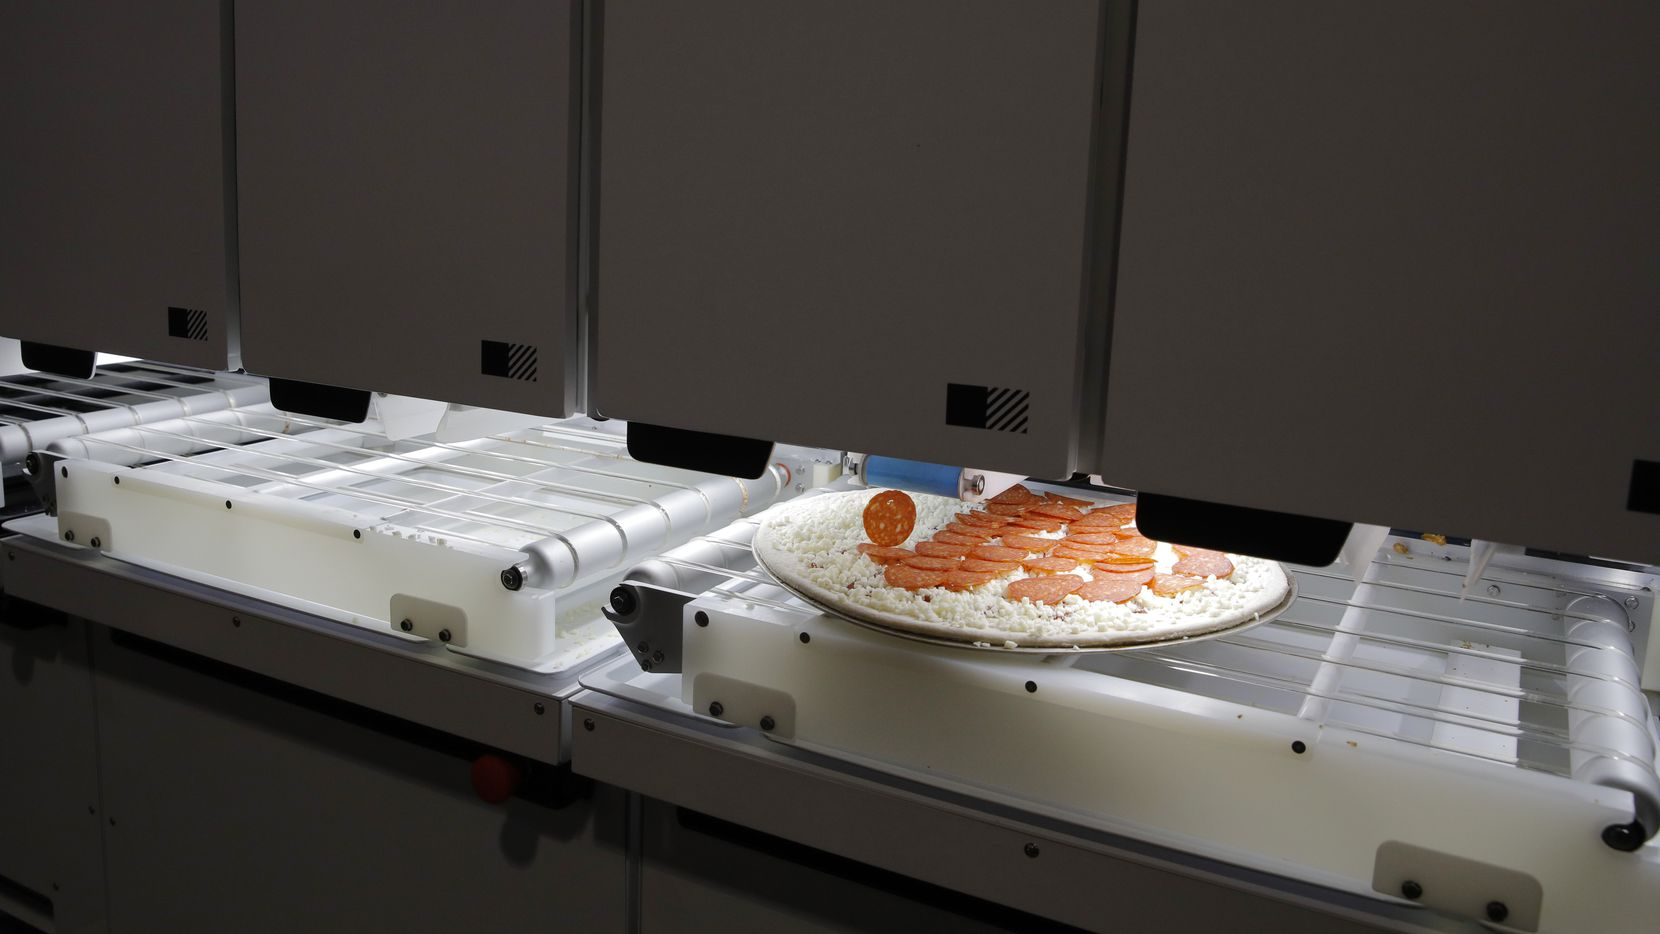 Picnic's pizza-making robot makes a pizza at a food vendor's booth during the CES tech show on Wednesday in Las Vegas. (AP Photo/John Locher)